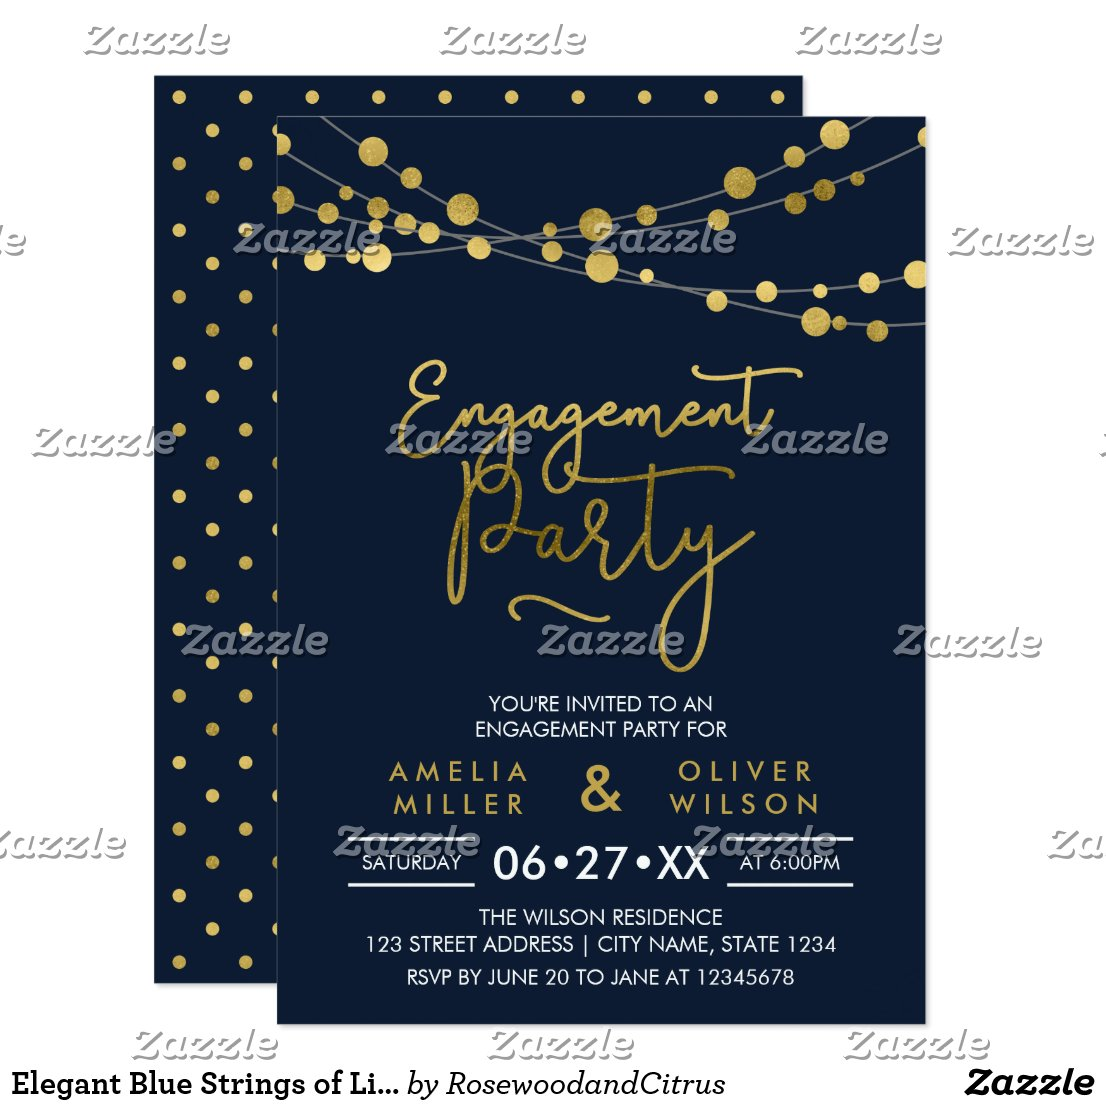 Elegant Blue Strings of Lights Engagement Party Invitation